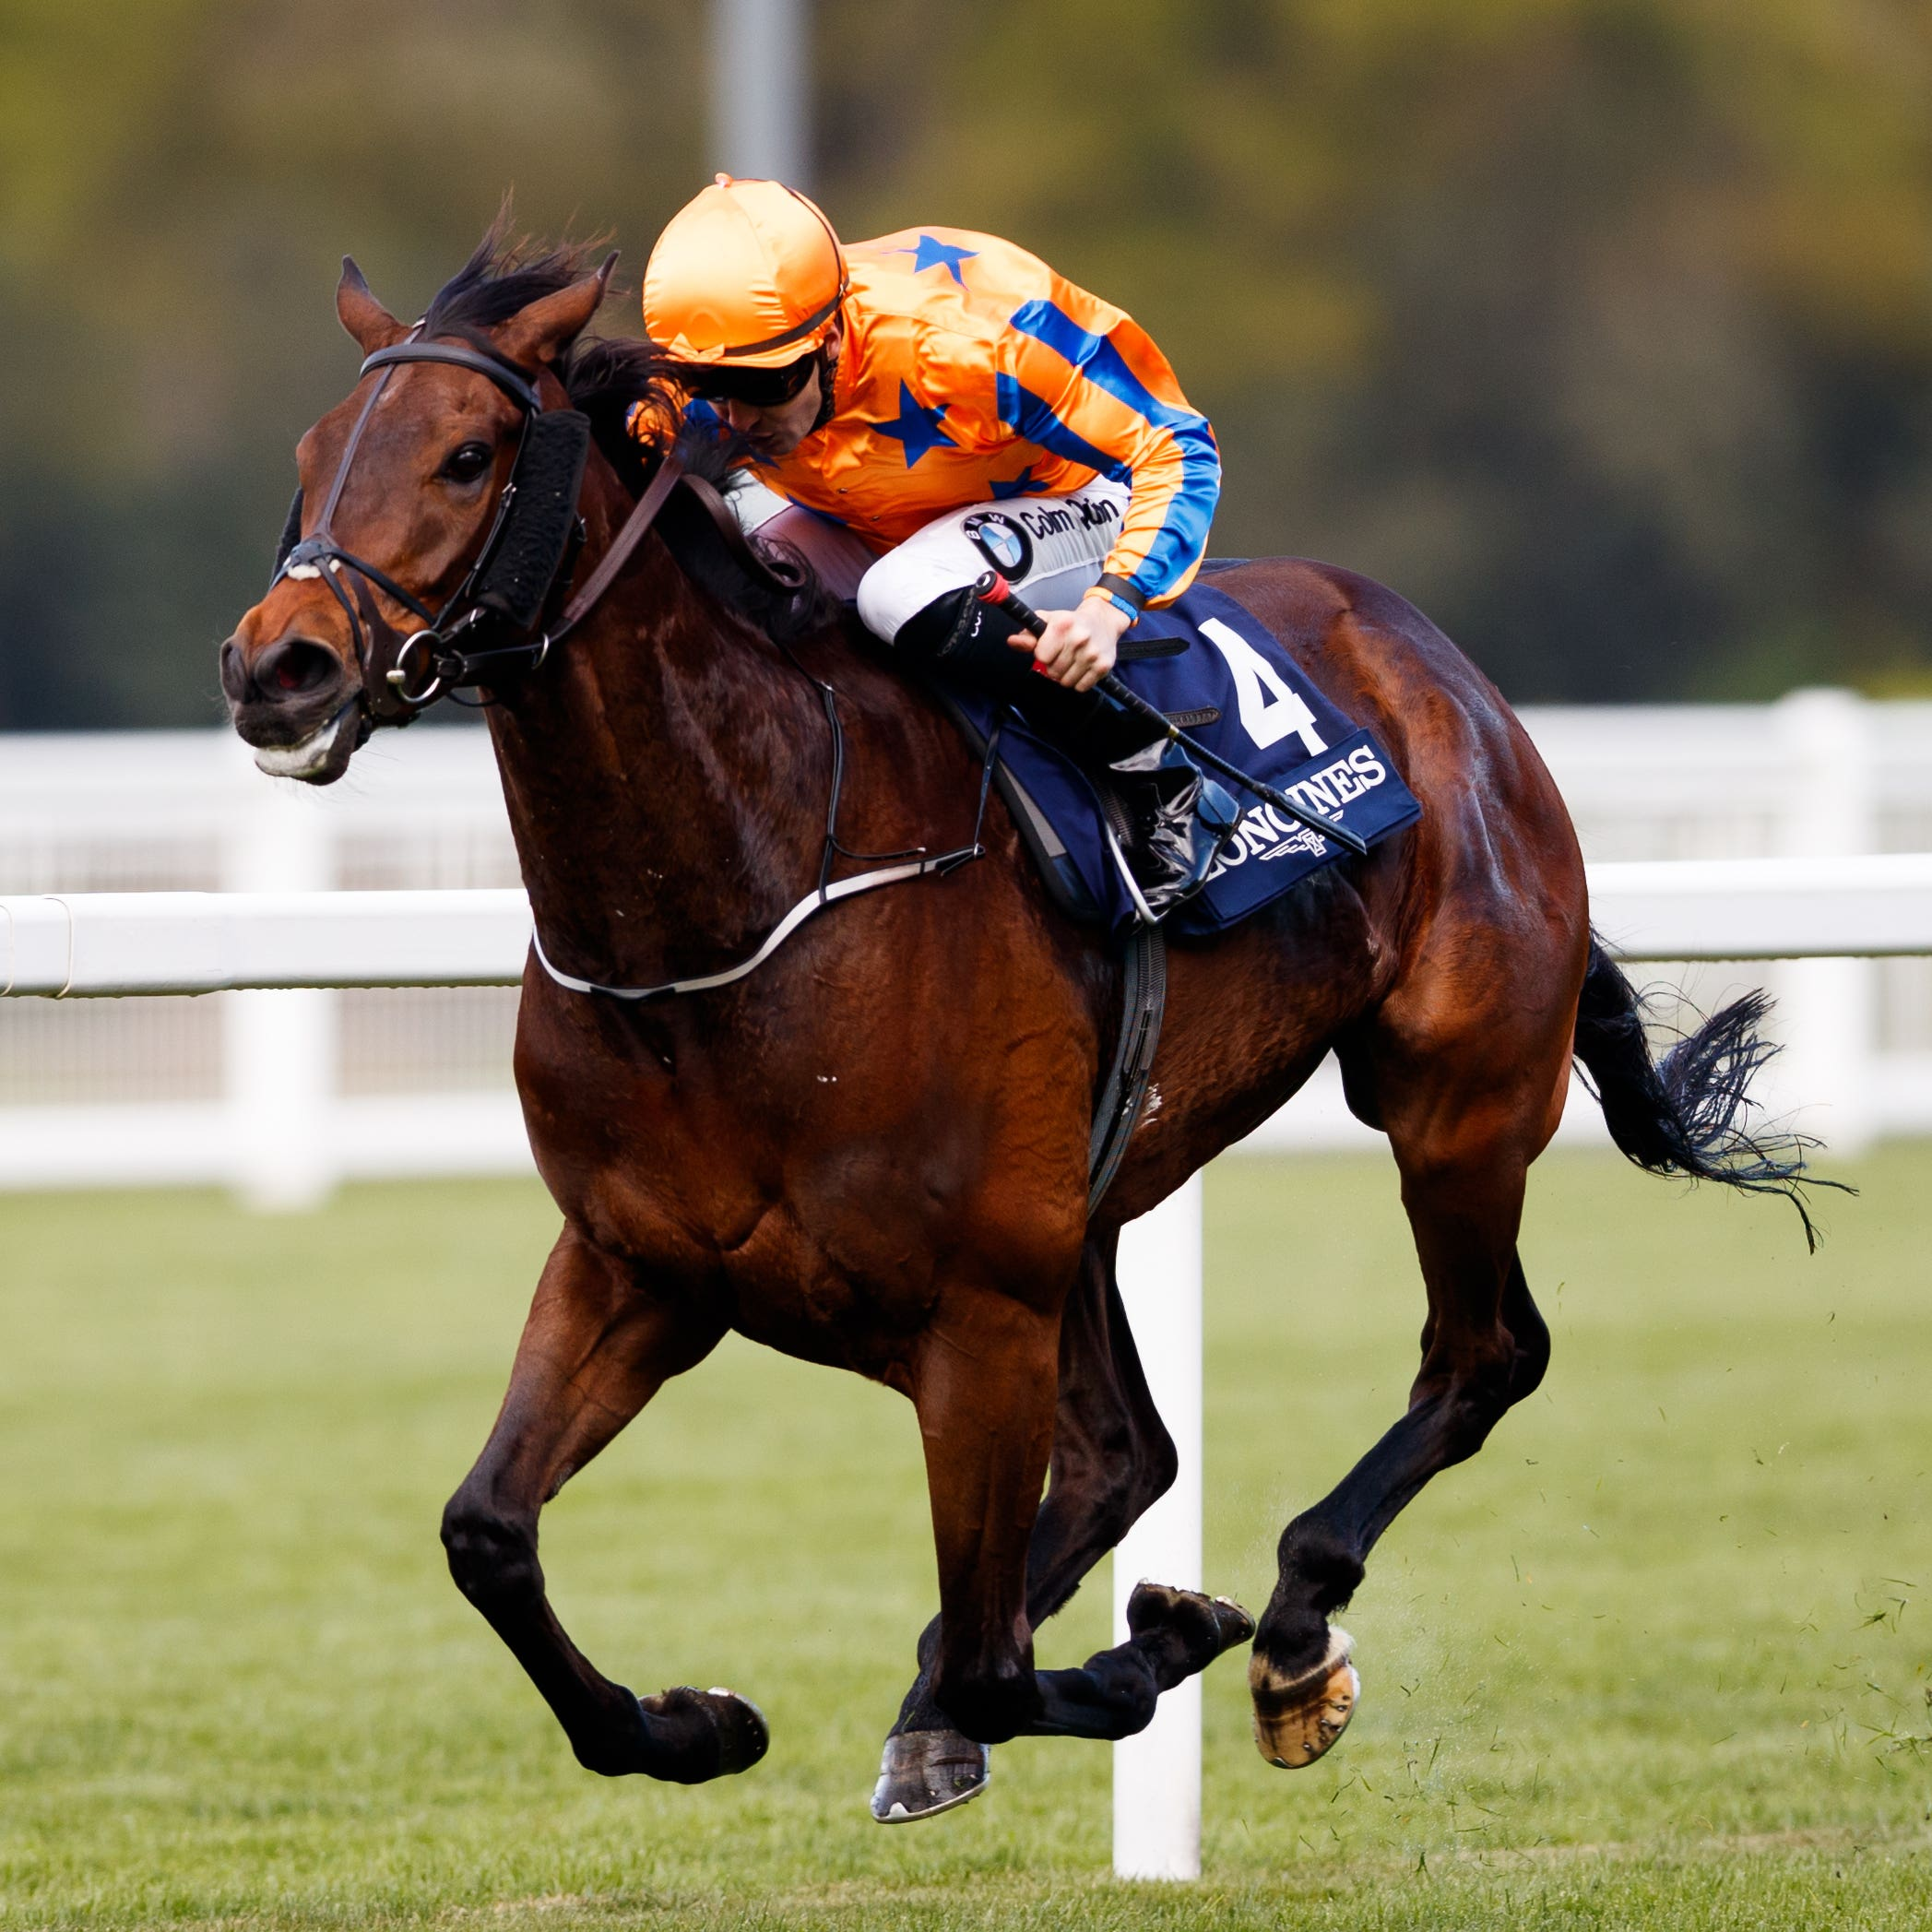 Torcedor on his way to winning the Sagaro Stakes at Ascot